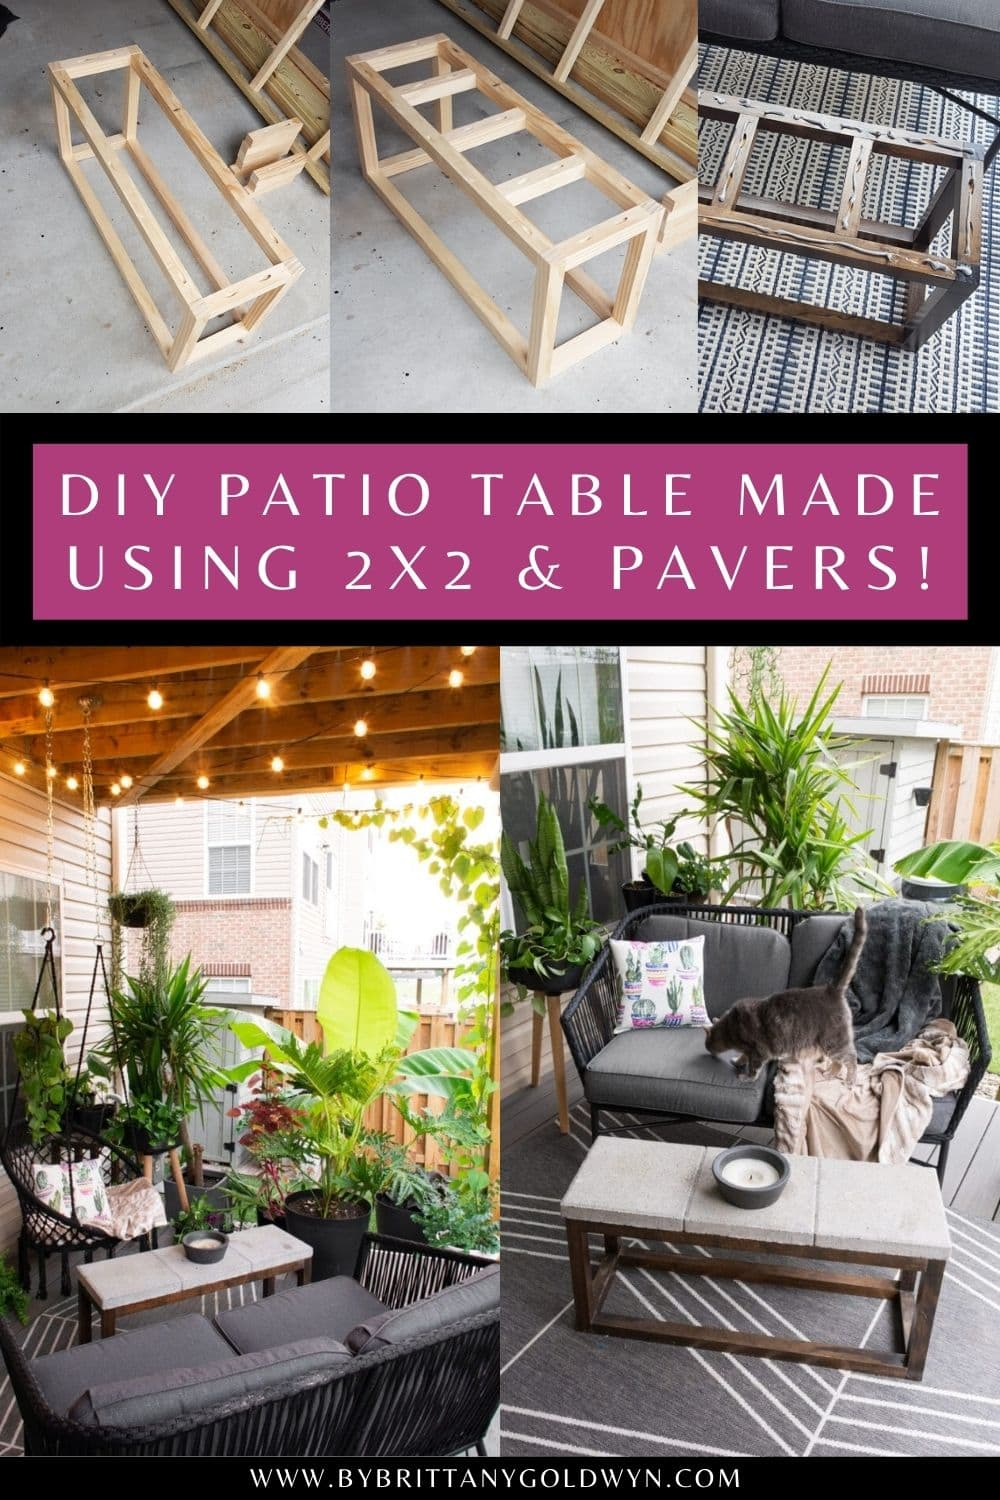 pinnable graphic with a collage of images and text overlay about how to make a diy patio table